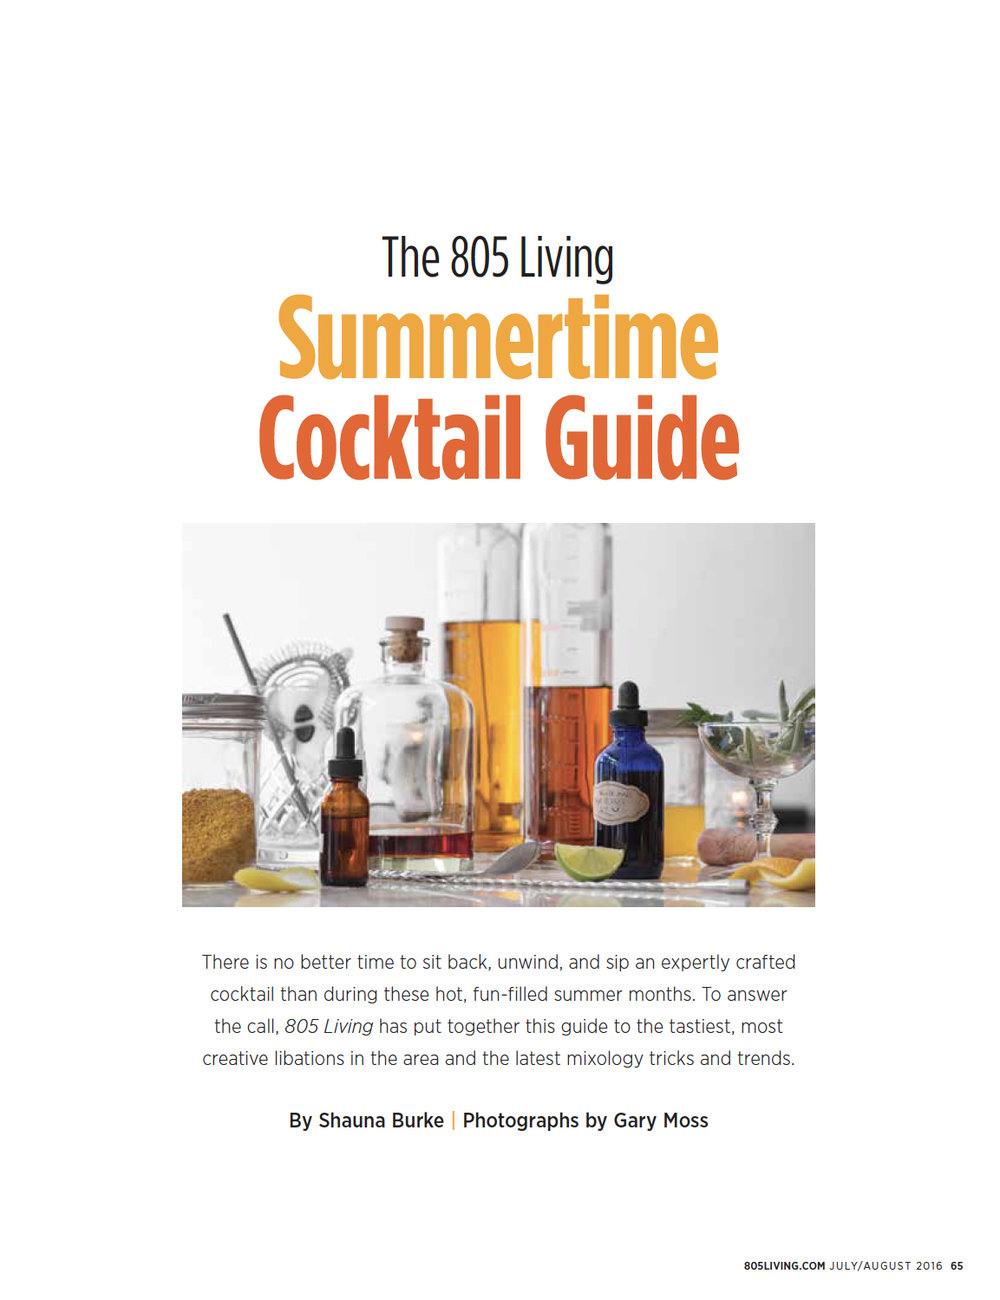 Summertime Cocktail Guide /  805 Living